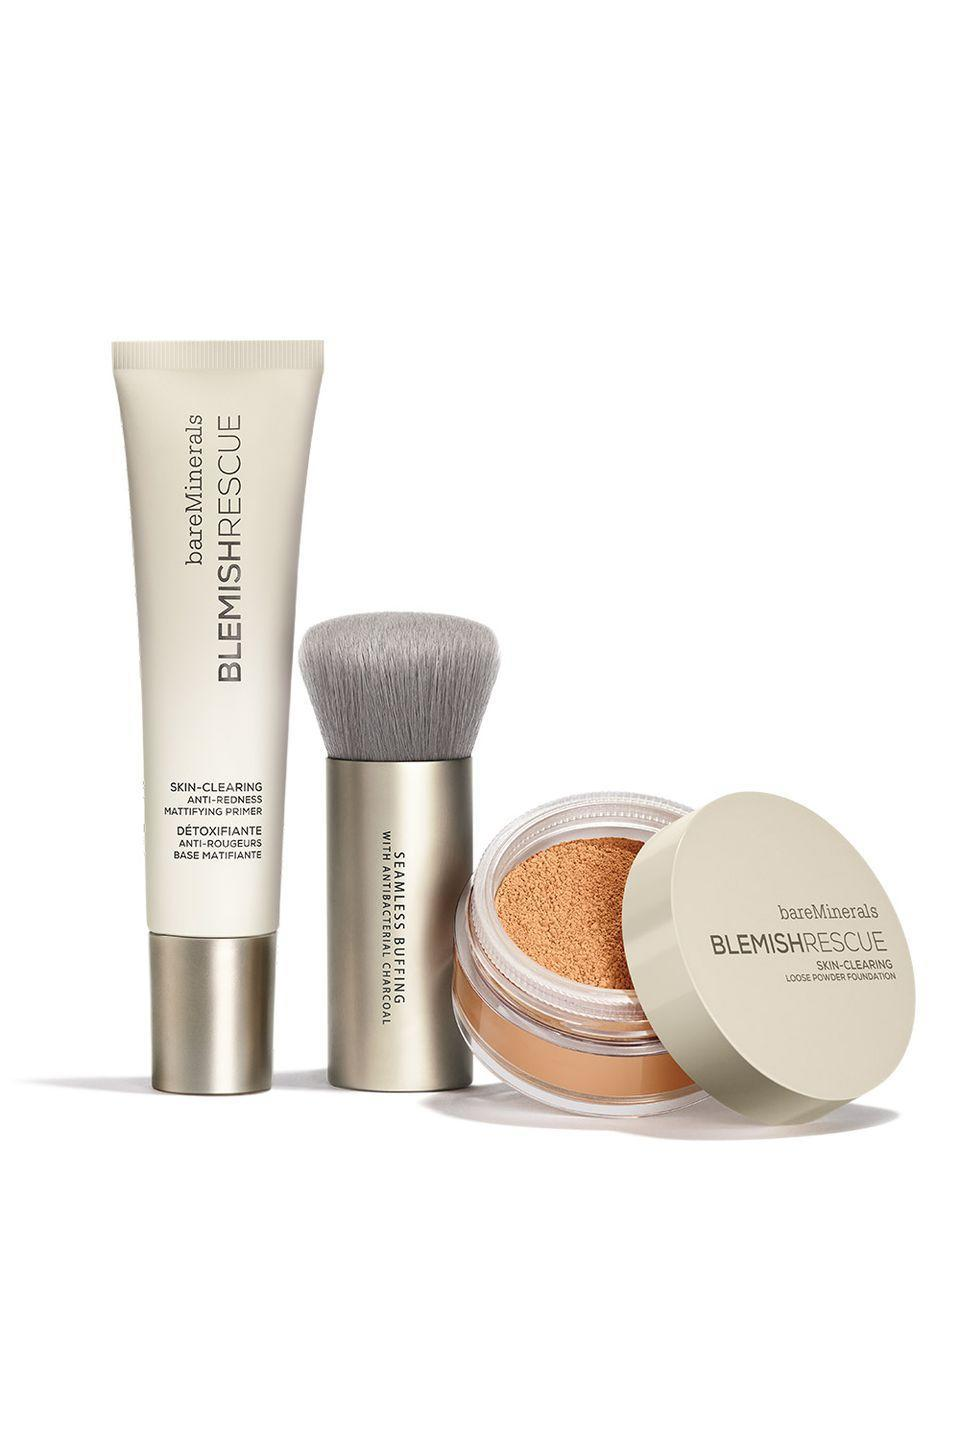 """<p>This primer and foundation by BareMinerals treats skin while you wear them using complexion-clearing ingredients like zinc, sulfur, kaolin clay, and salicylic acid. And, because<em> no one </em>cleans their brushes after every single use, the buffing brush repels bacteria so you won't be spreading acne-causing grime all over your face.<br></p><p>BareMinerals Blemish Rescue Anti-Redness Mattifying Primer, $26, <a href=""""https://www.bareminerals.com/face-makeup/face-primer/blemish-rescue%E2%84%A2-anti-redness-mattifying-primer/US86552.html"""" rel=""""nofollow noopener"""" target=""""_blank"""" data-ylk=""""slk:bareminerals.com"""" class=""""link rapid-noclick-resp"""">bareminerals.com</a>; BareMinerals Blemish Rescue Skin-Clearing Loose Powder Foundation, $29, <a href=""""https://www.bareminerals.com/face-makeup/foundation/blemish-rescue-skin-clearing-loose-powder-foundation/USmasterblemishrescuefound.html?dwvar_USmasterblemishrescuefound_SkinShade=MEDIUM%203C"""" rel=""""nofollow noopener"""" target=""""_blank"""" data-ylk=""""slk:bareminerals.com"""" class=""""link rapid-noclick-resp"""">bareminerals.com</a>; BareMinerals Seamless Buffing Brush with Anti-Bacterial Charcoal, $28, <a href=""""https://www.bareminerals.com/brushes/face_brushes/seamless-buffing-brush-with-antibacterial-charcoal/US86654.html"""" rel=""""nofollow noopener"""" target=""""_blank"""" data-ylk=""""slk:bareminerals.com"""" class=""""link rapid-noclick-resp"""">bareminerals.com</a>.</p>"""